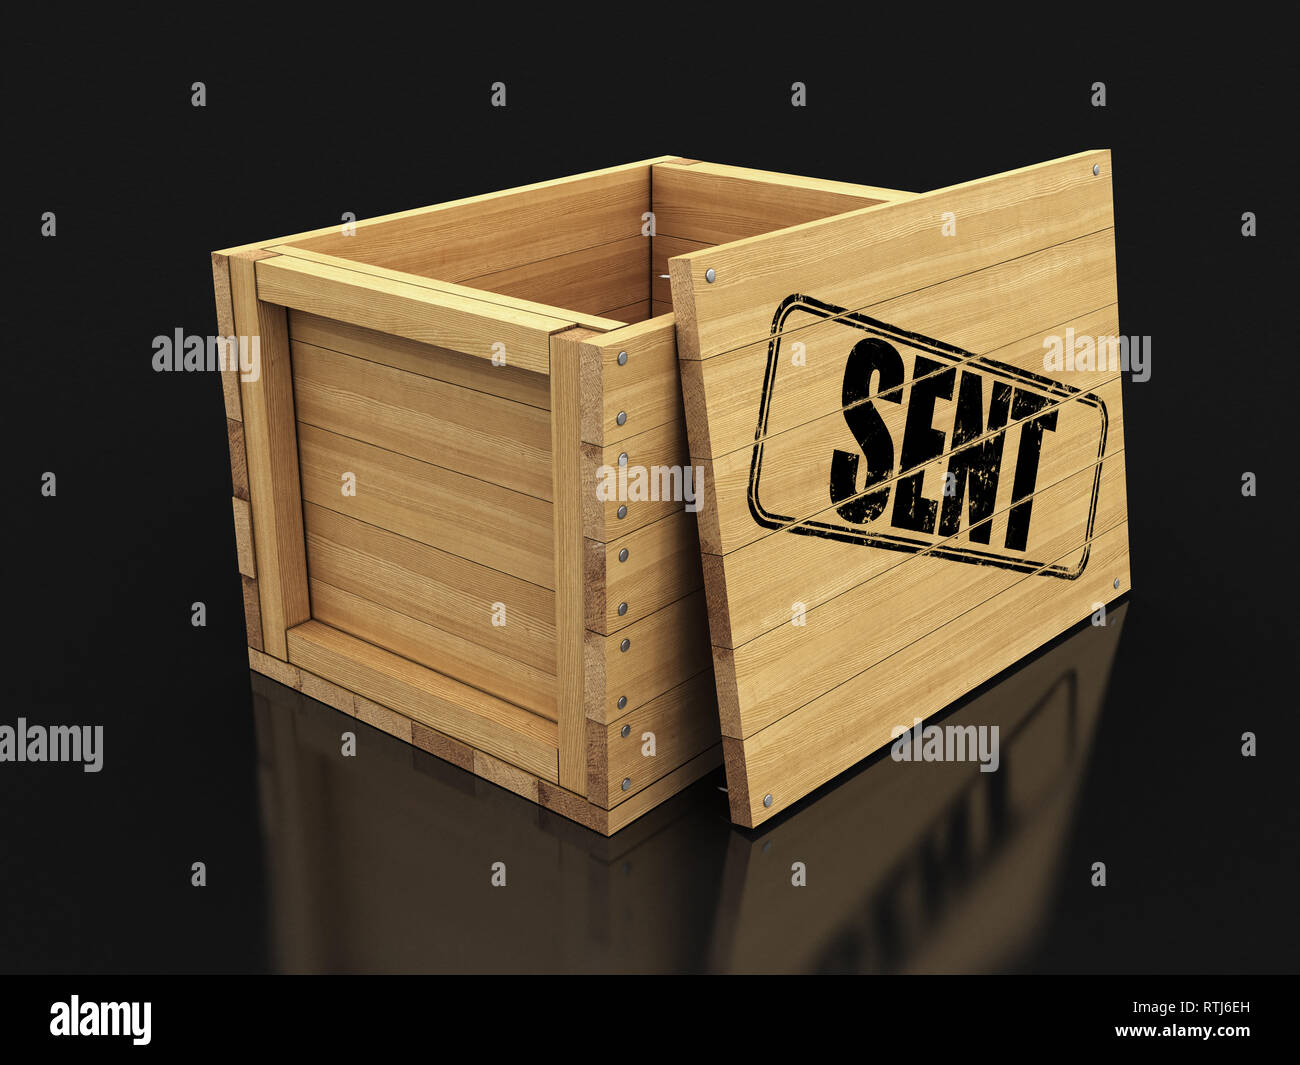 Wooden crate with stamp Sent. Image with clipping path - Stock Image